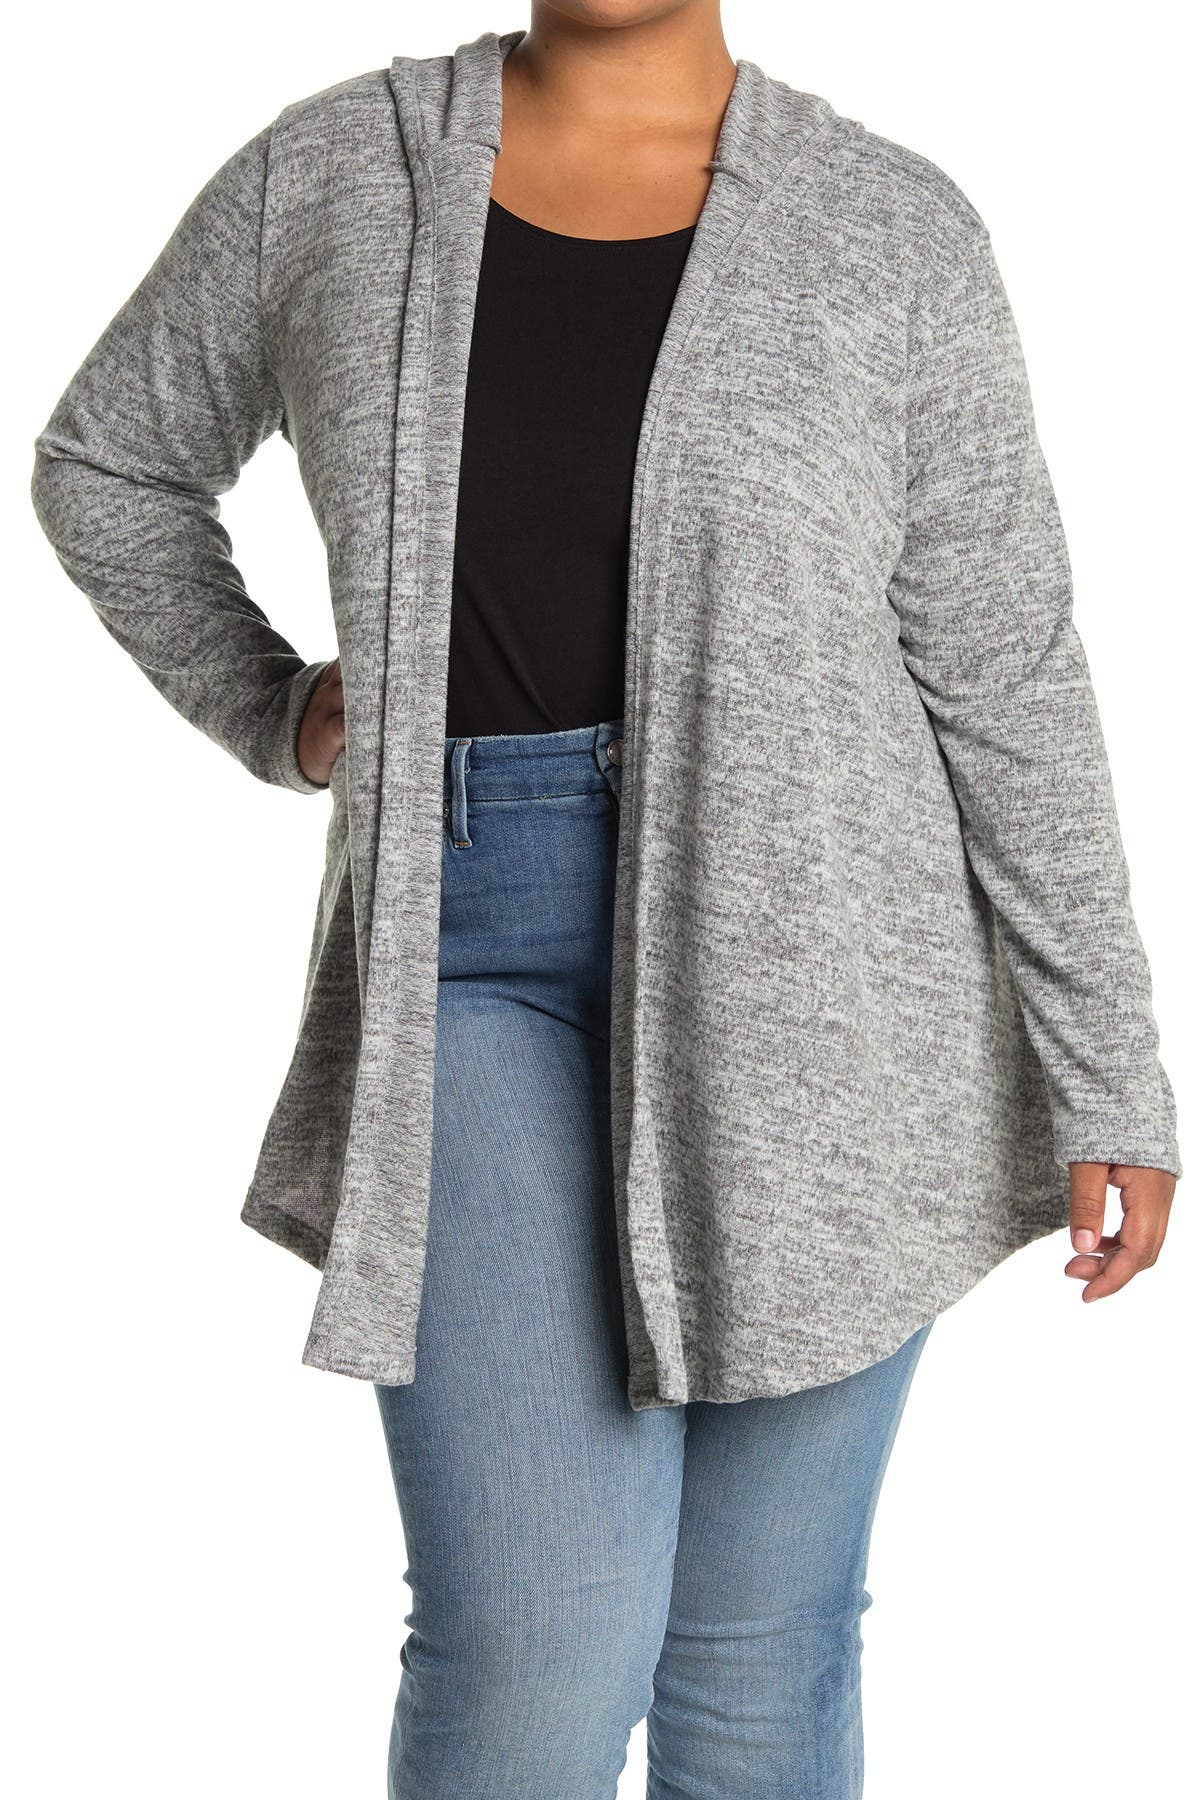 Image of Forgotten Grace Open Knit Brushed Hacci Cardigan